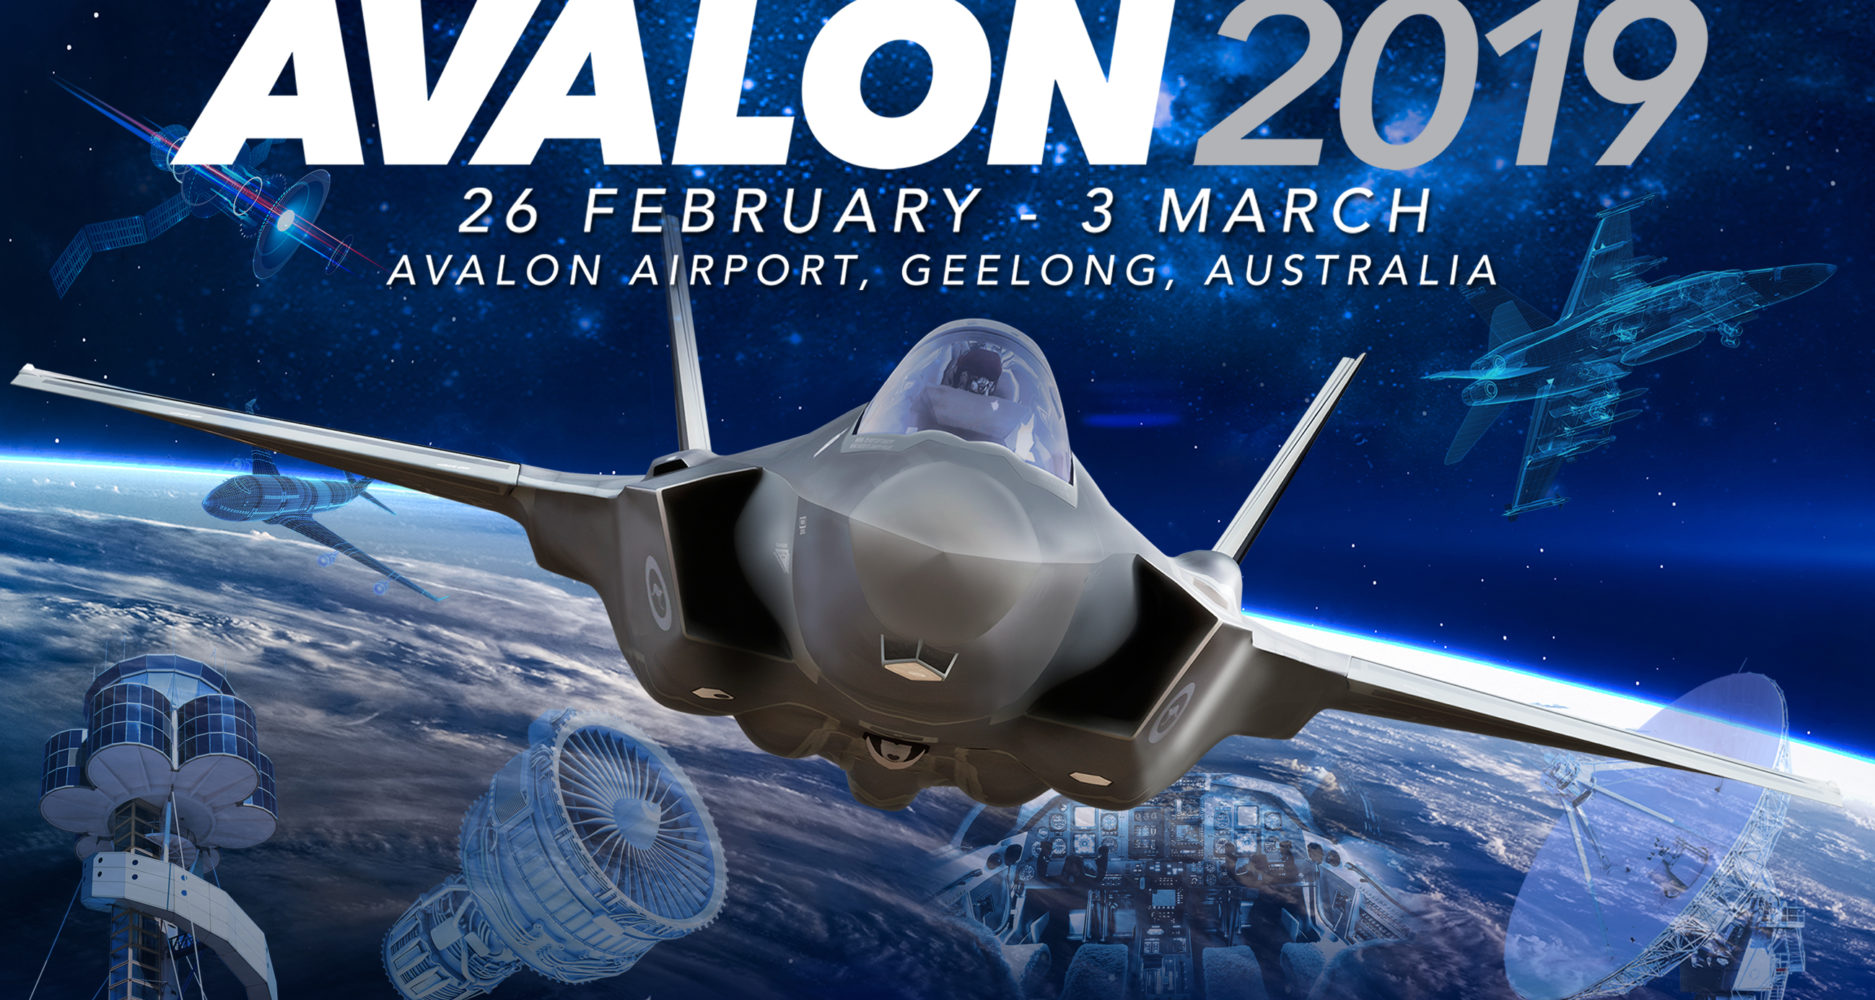 Mellori to Exhibit at Avalon Airshow 2019